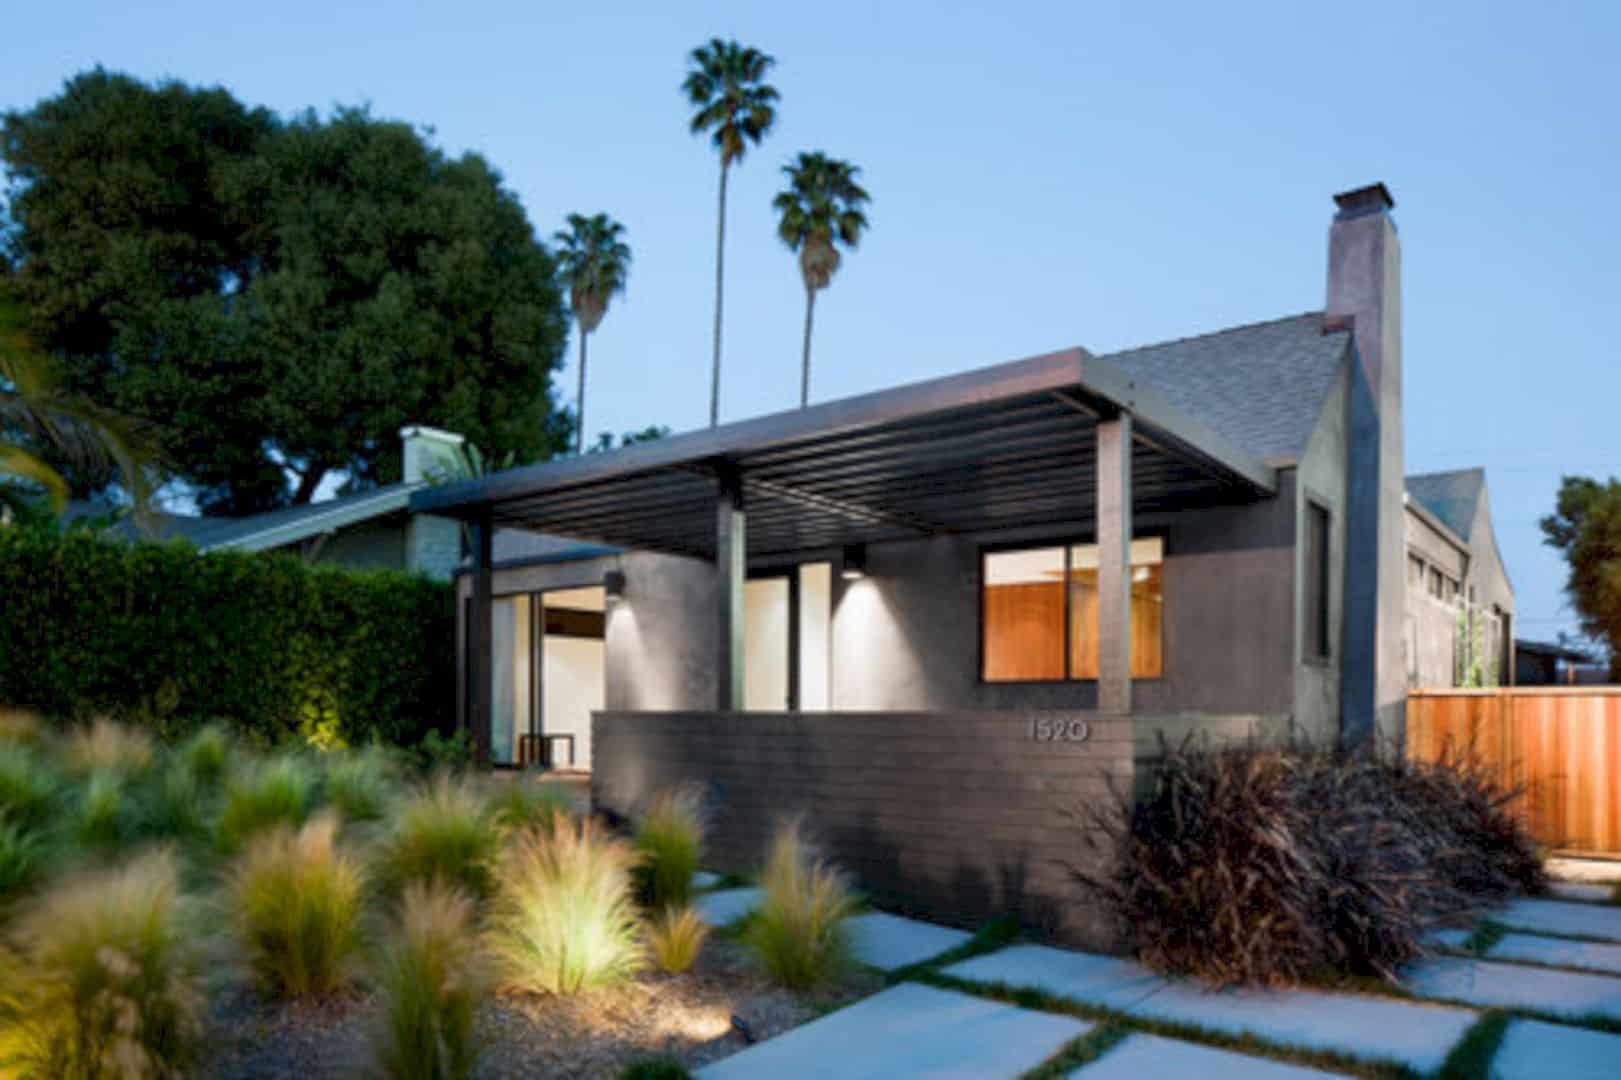 Hollywood Bungalow The Transformation Of A 90 Year Old Home In Hollywood 12